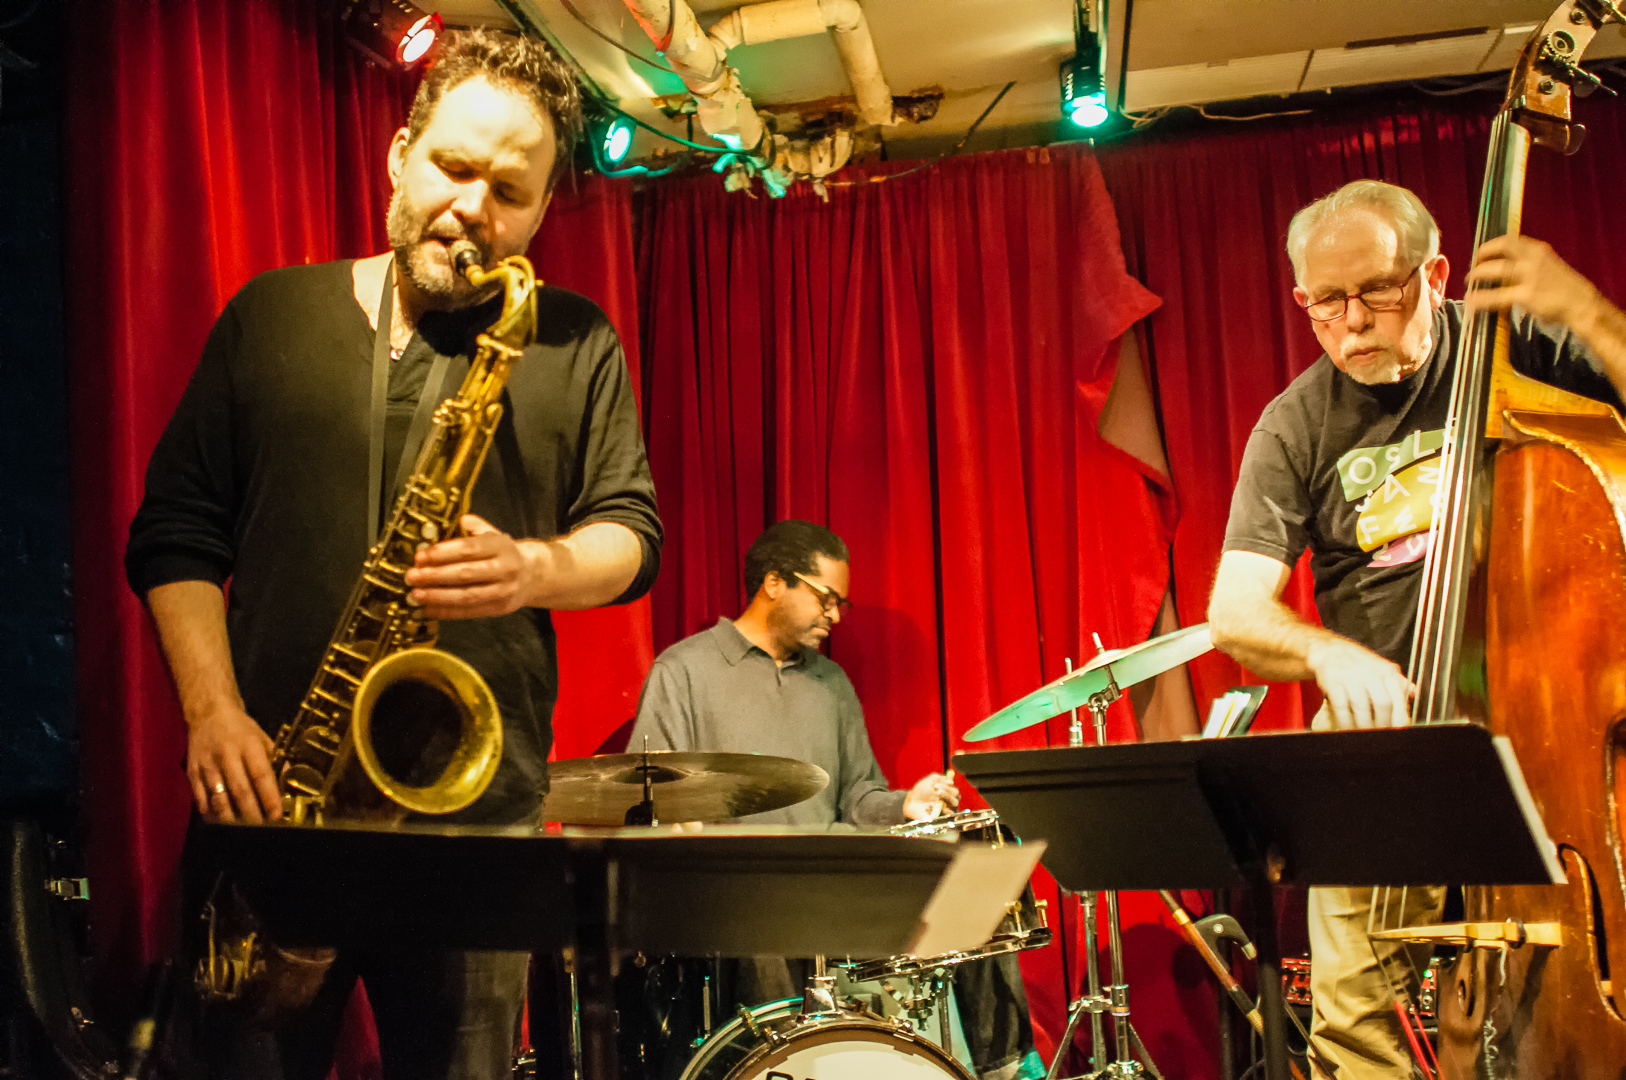 Jason rigby, gerald cleaver and cameron brown at the cornelia street cafe